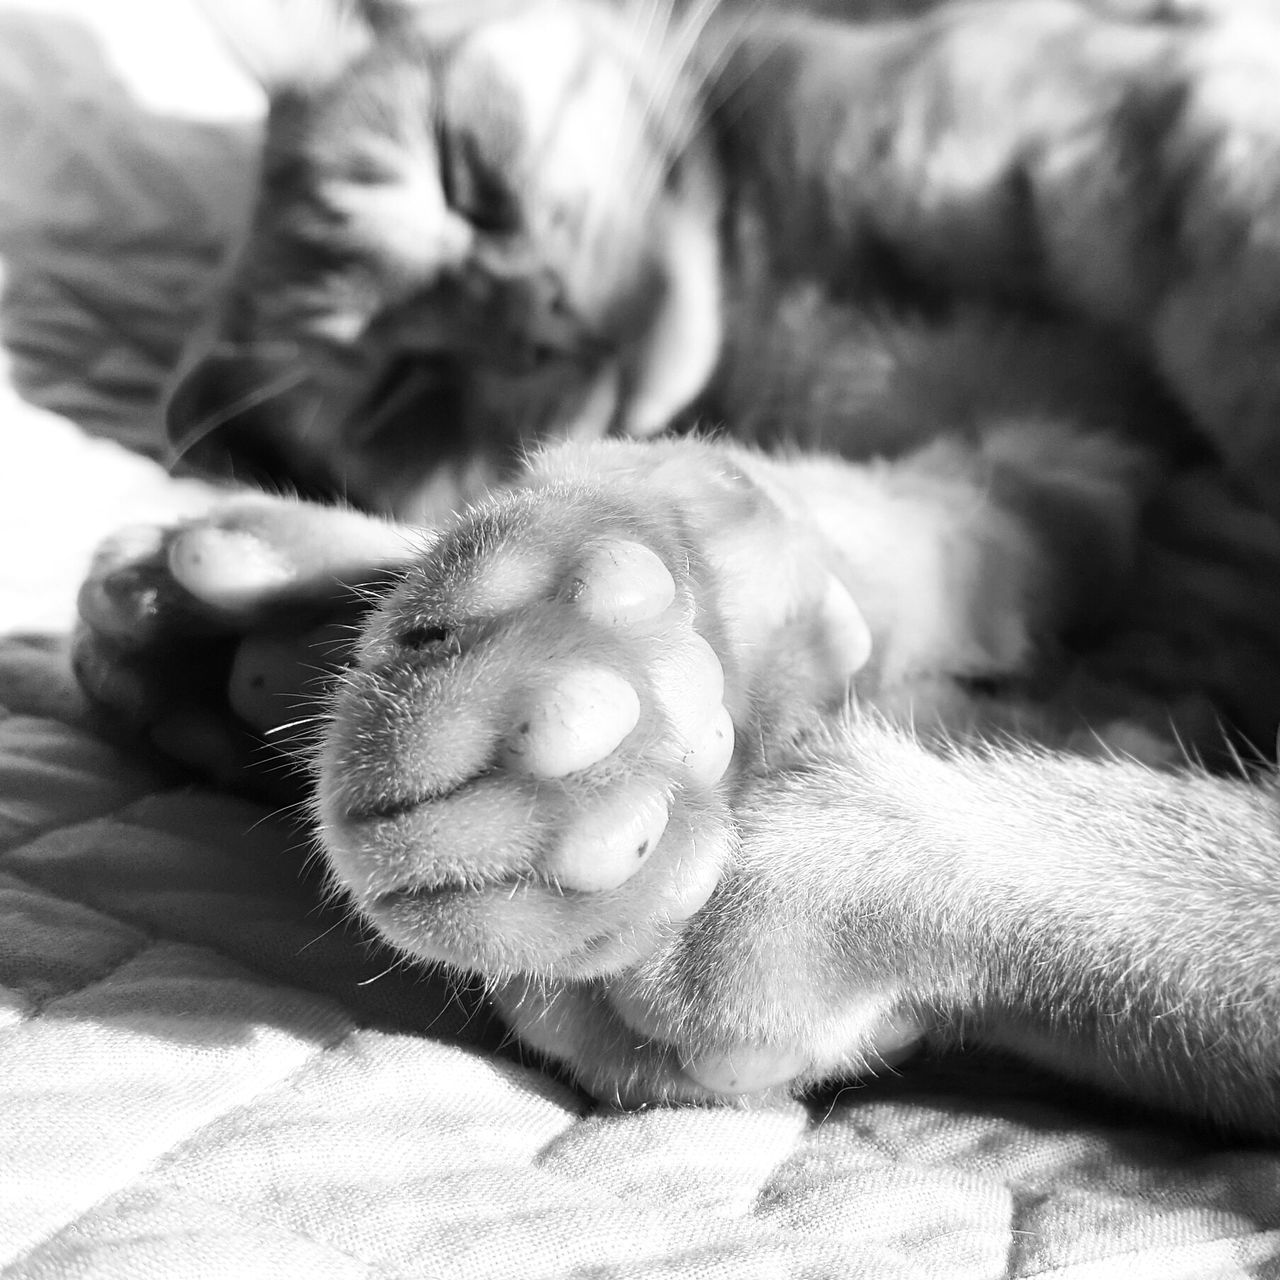 mammal, animal, domestic, animal themes, domestic animals, pets, one animal, relaxation, bed, cat, vertebrate, feline, domestic cat, furniture, close-up, resting, no people, indoors, sleeping, lying down, whisker, animal leg, animal head